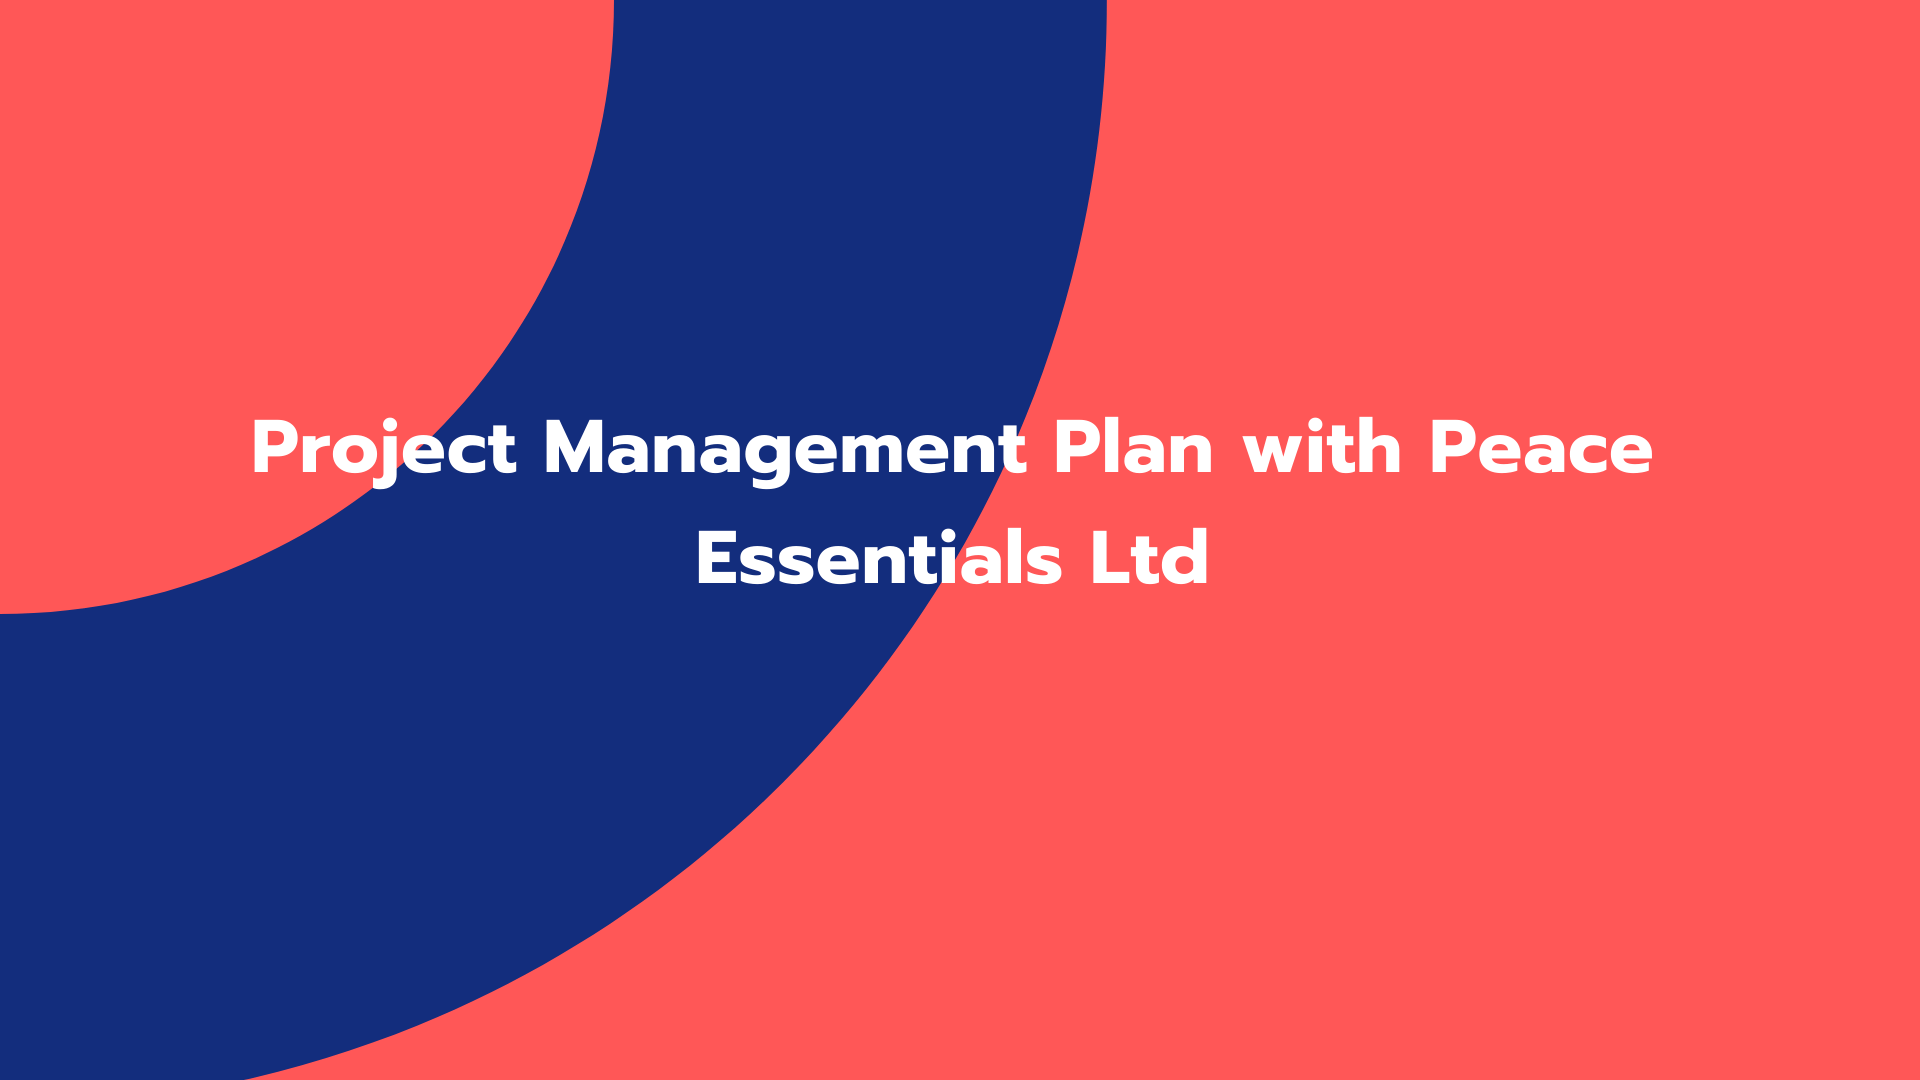 Project Management Plan with Peace Essentials Ltd